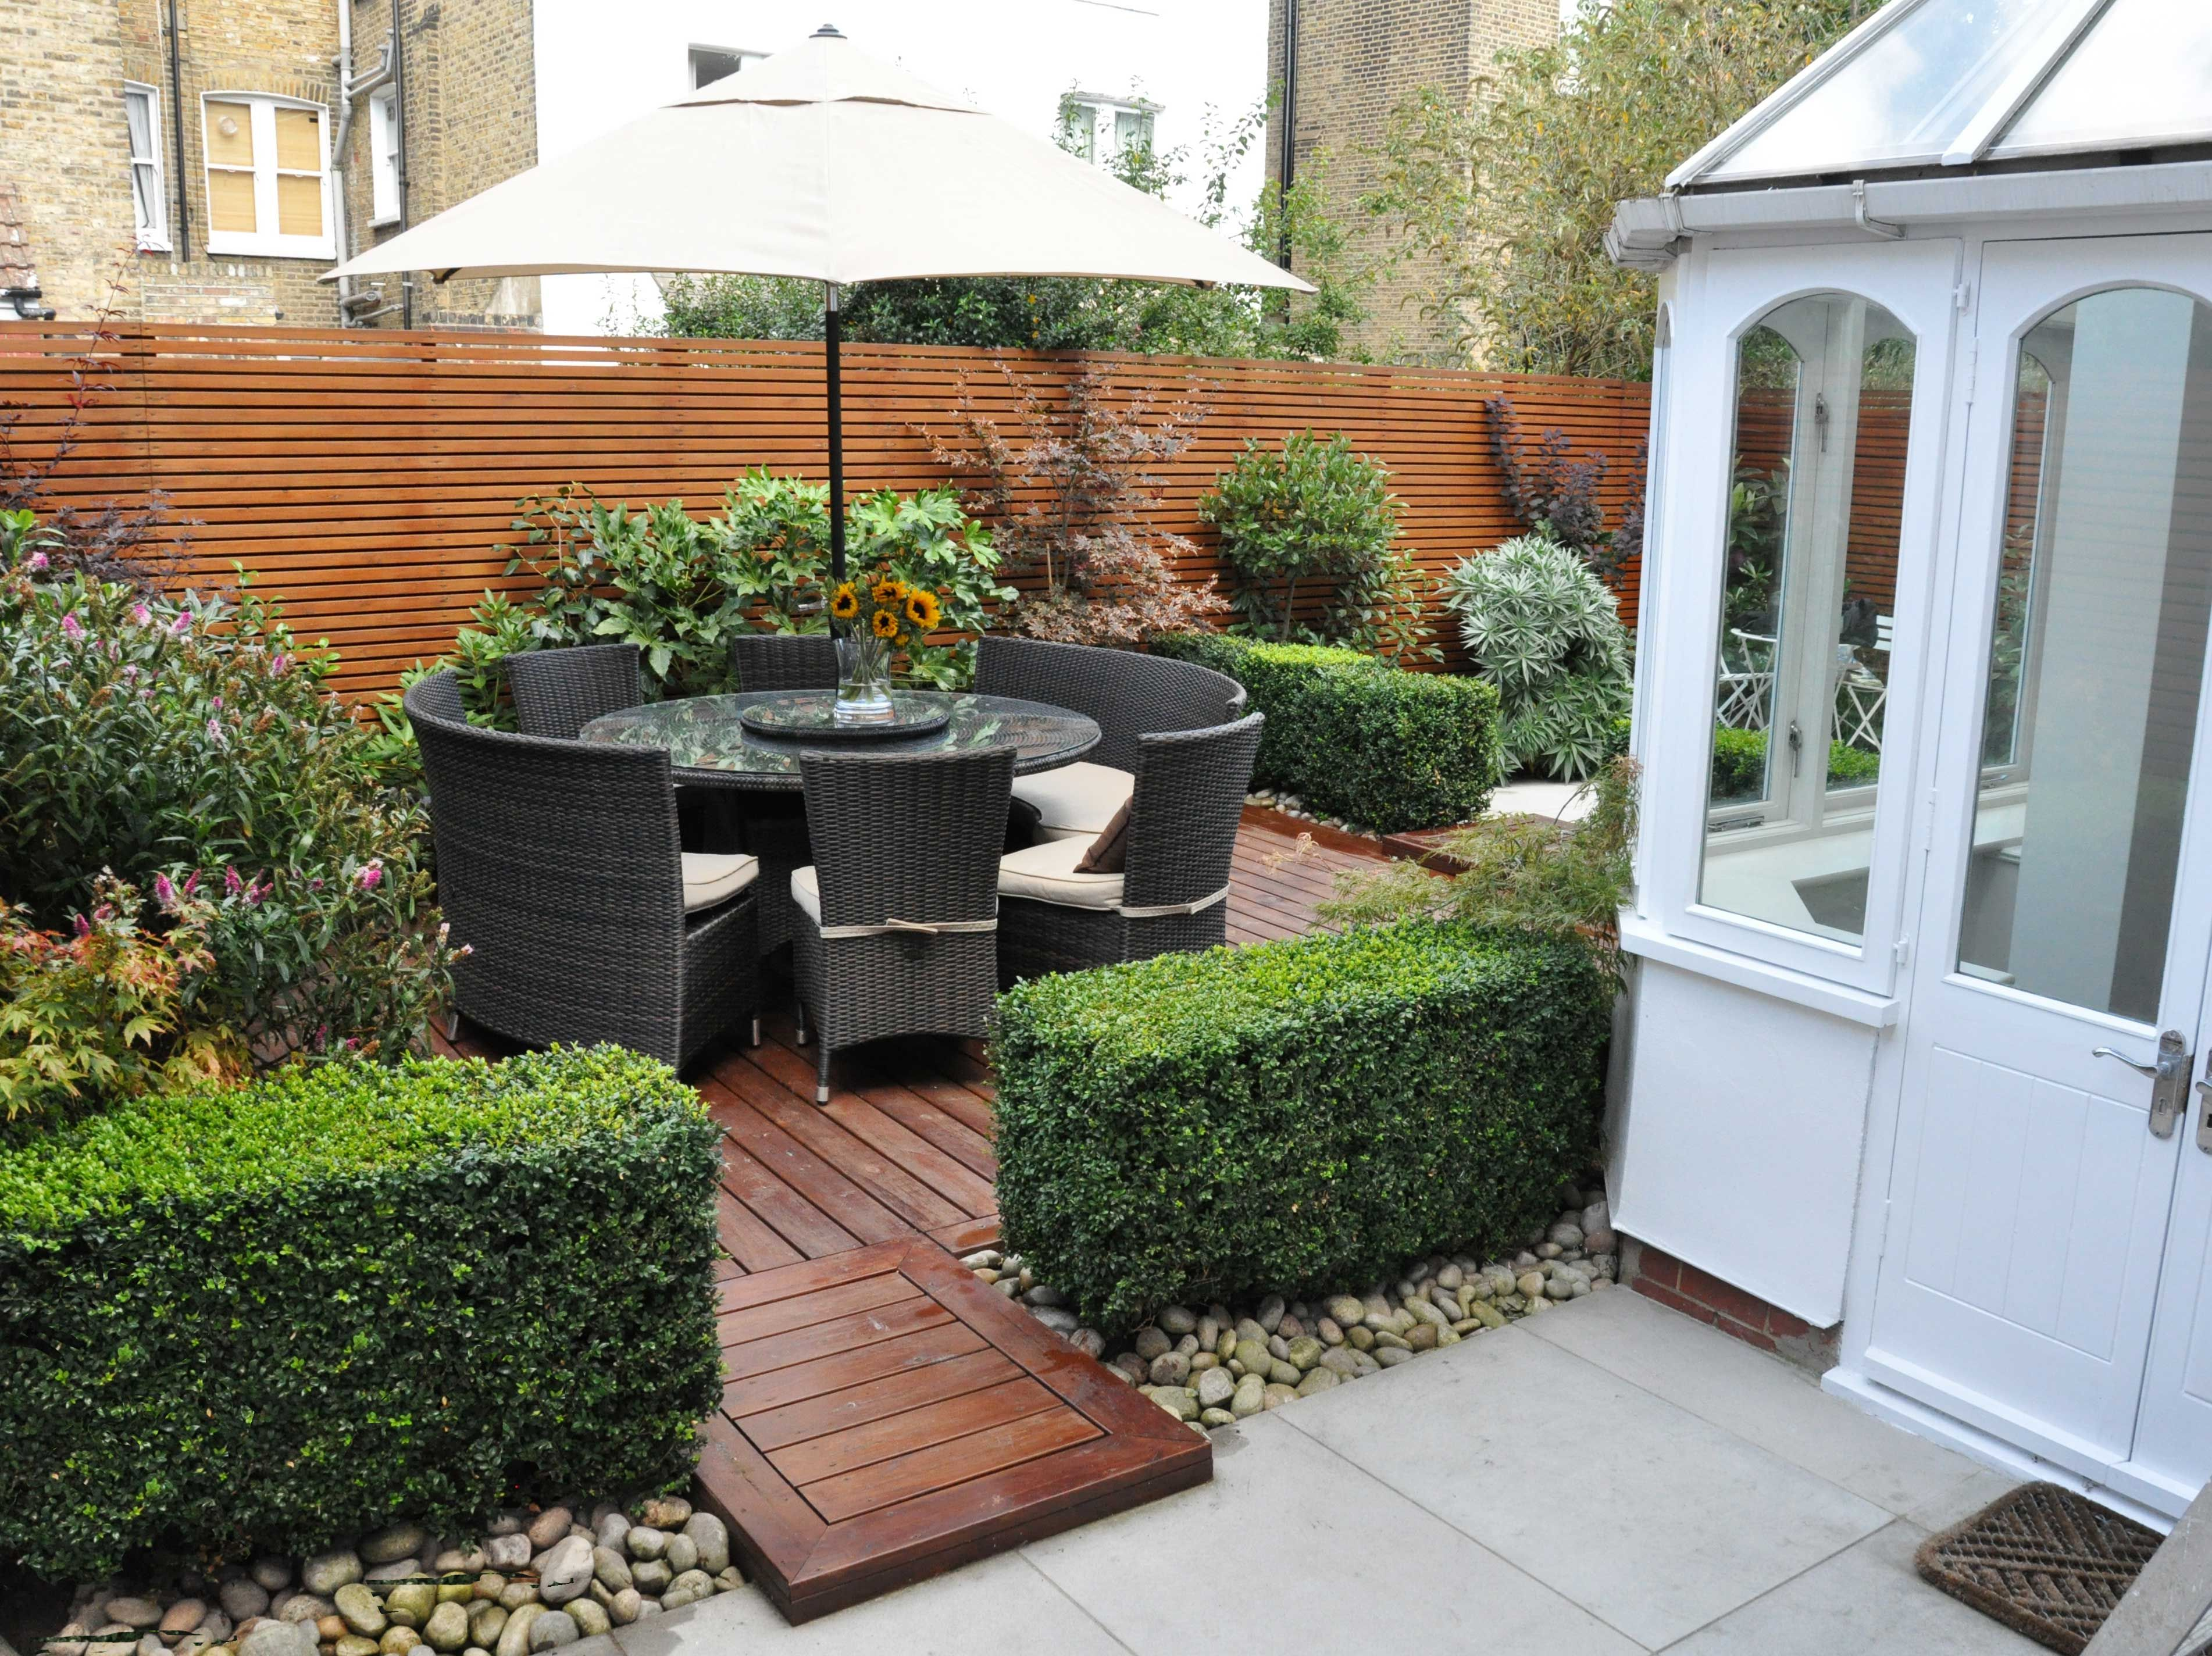 our design for this clapham garden sought to make smart use of its